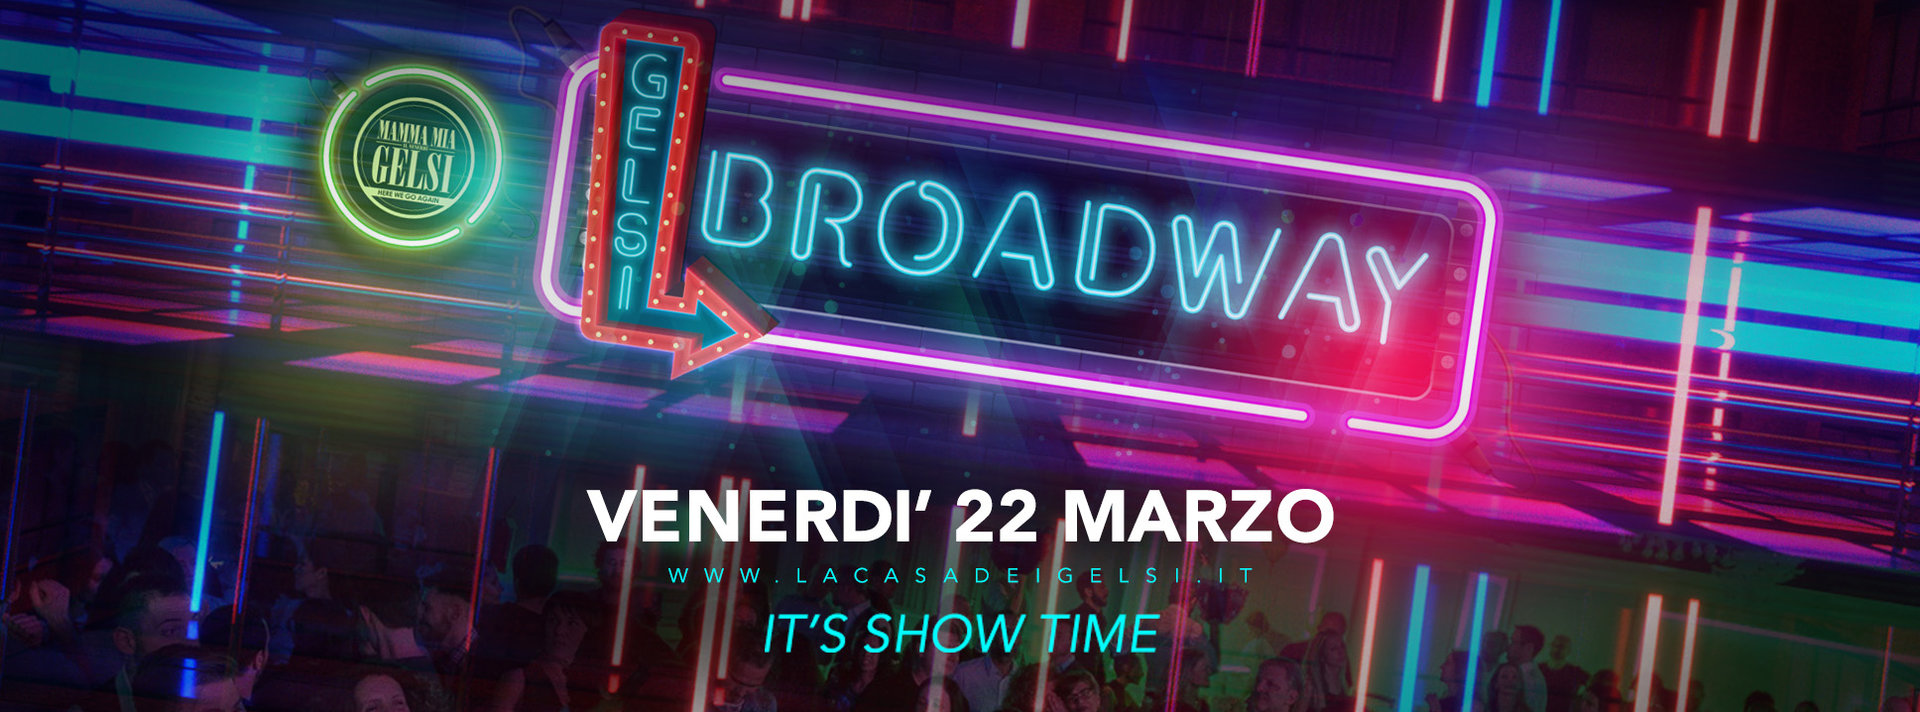 Gelsi brodway 22 marzo 2019